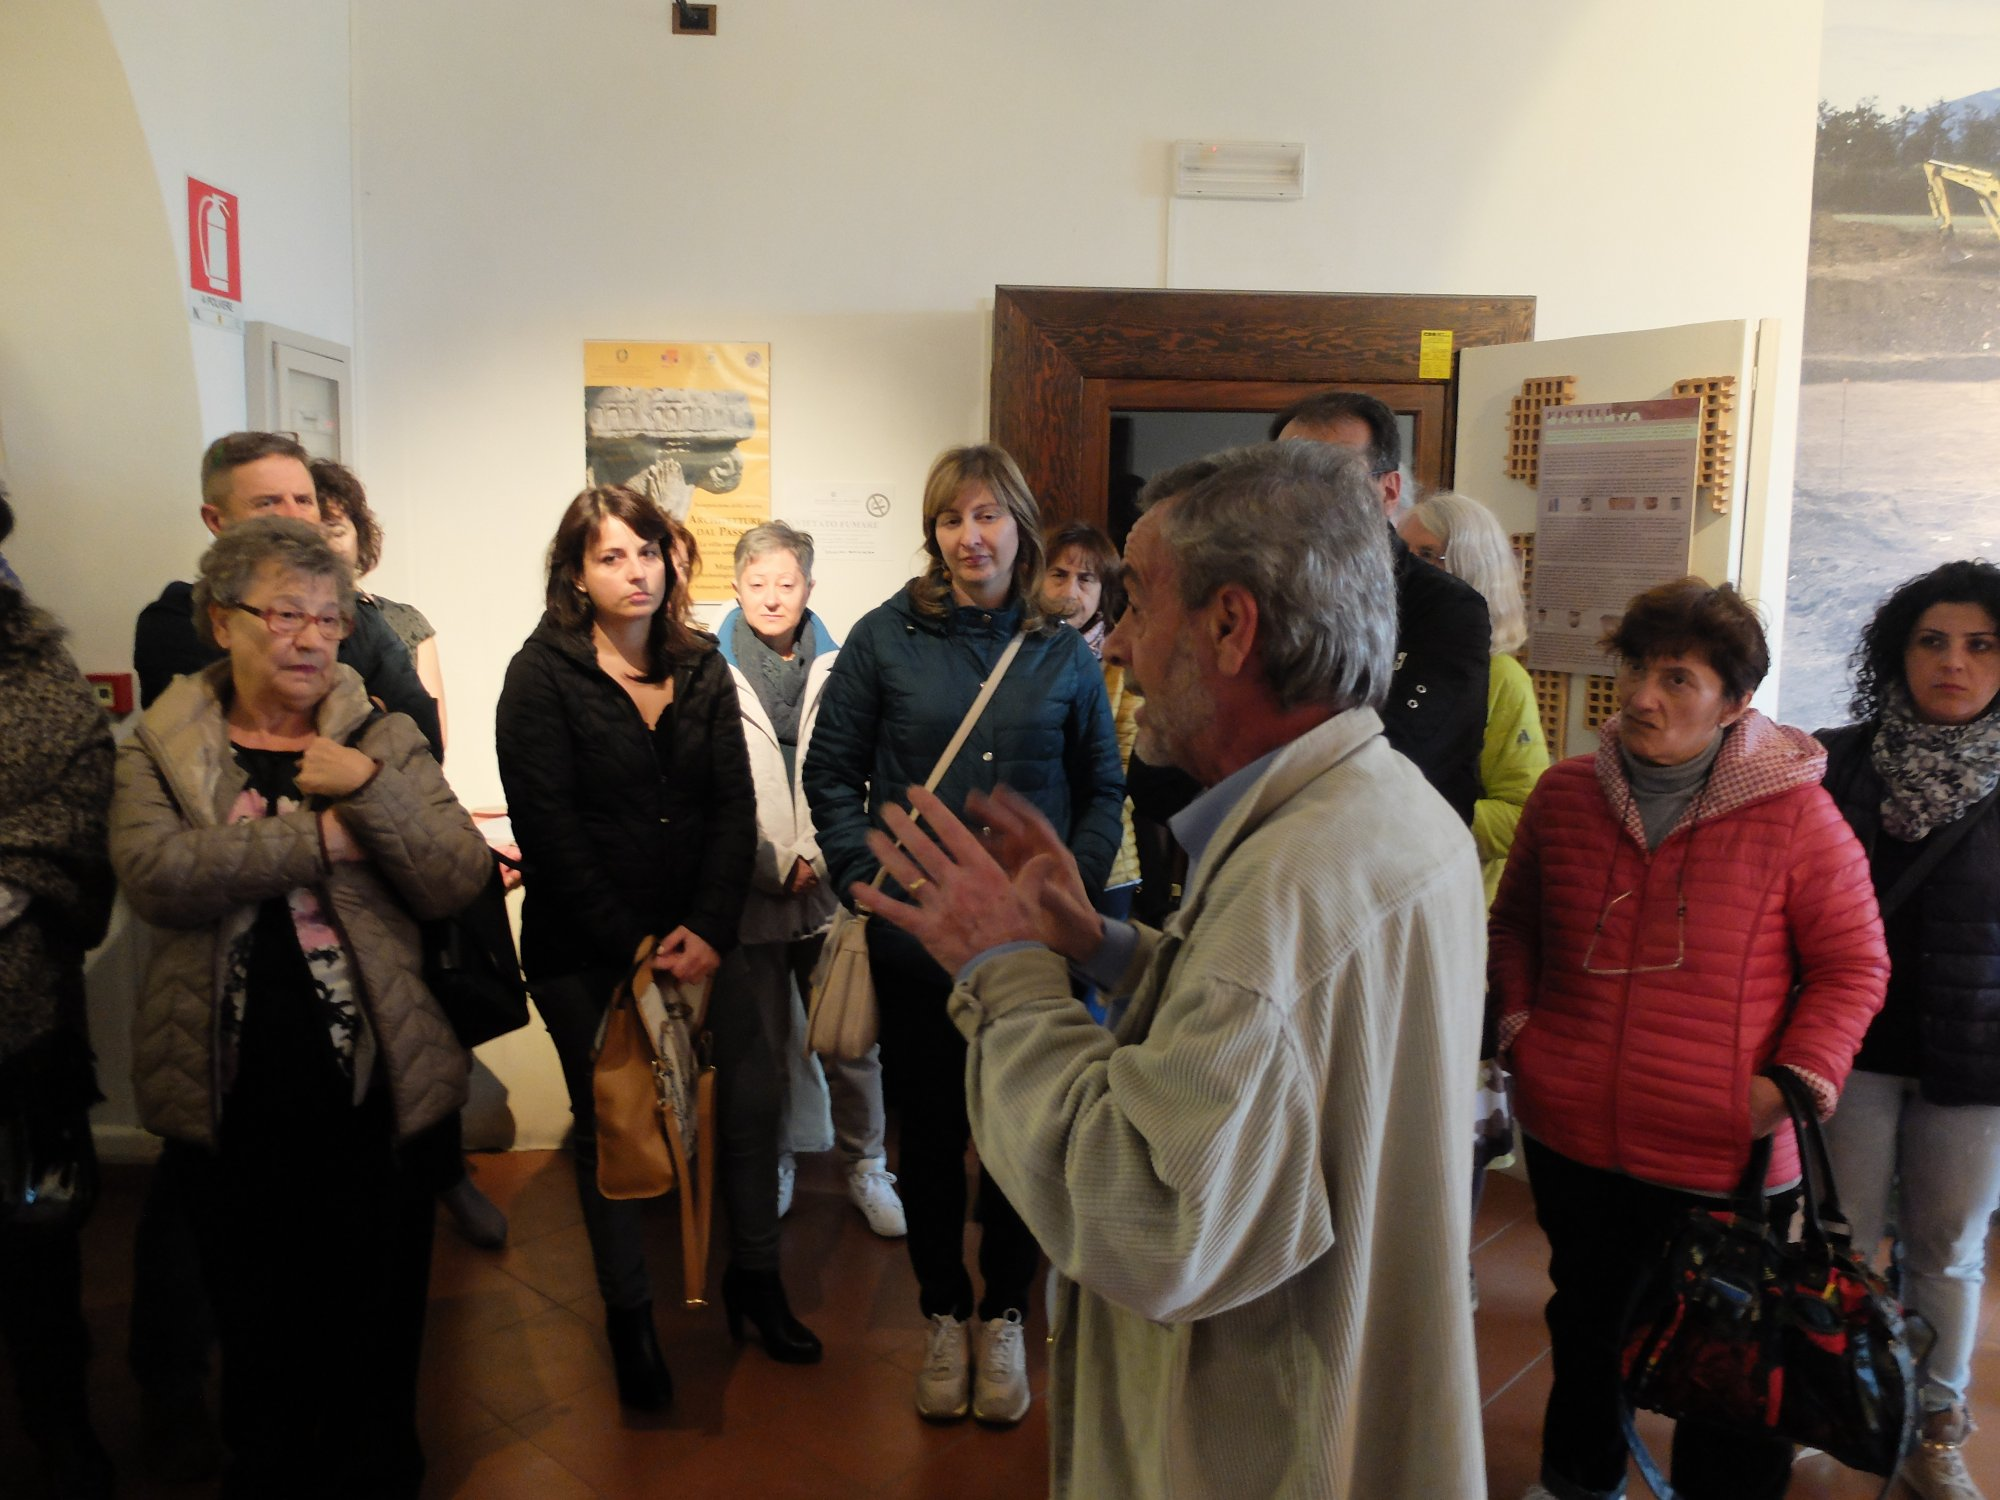 5a-salvatore-pagliucca-with-group-at-muro-museum-incl-paola-bottini